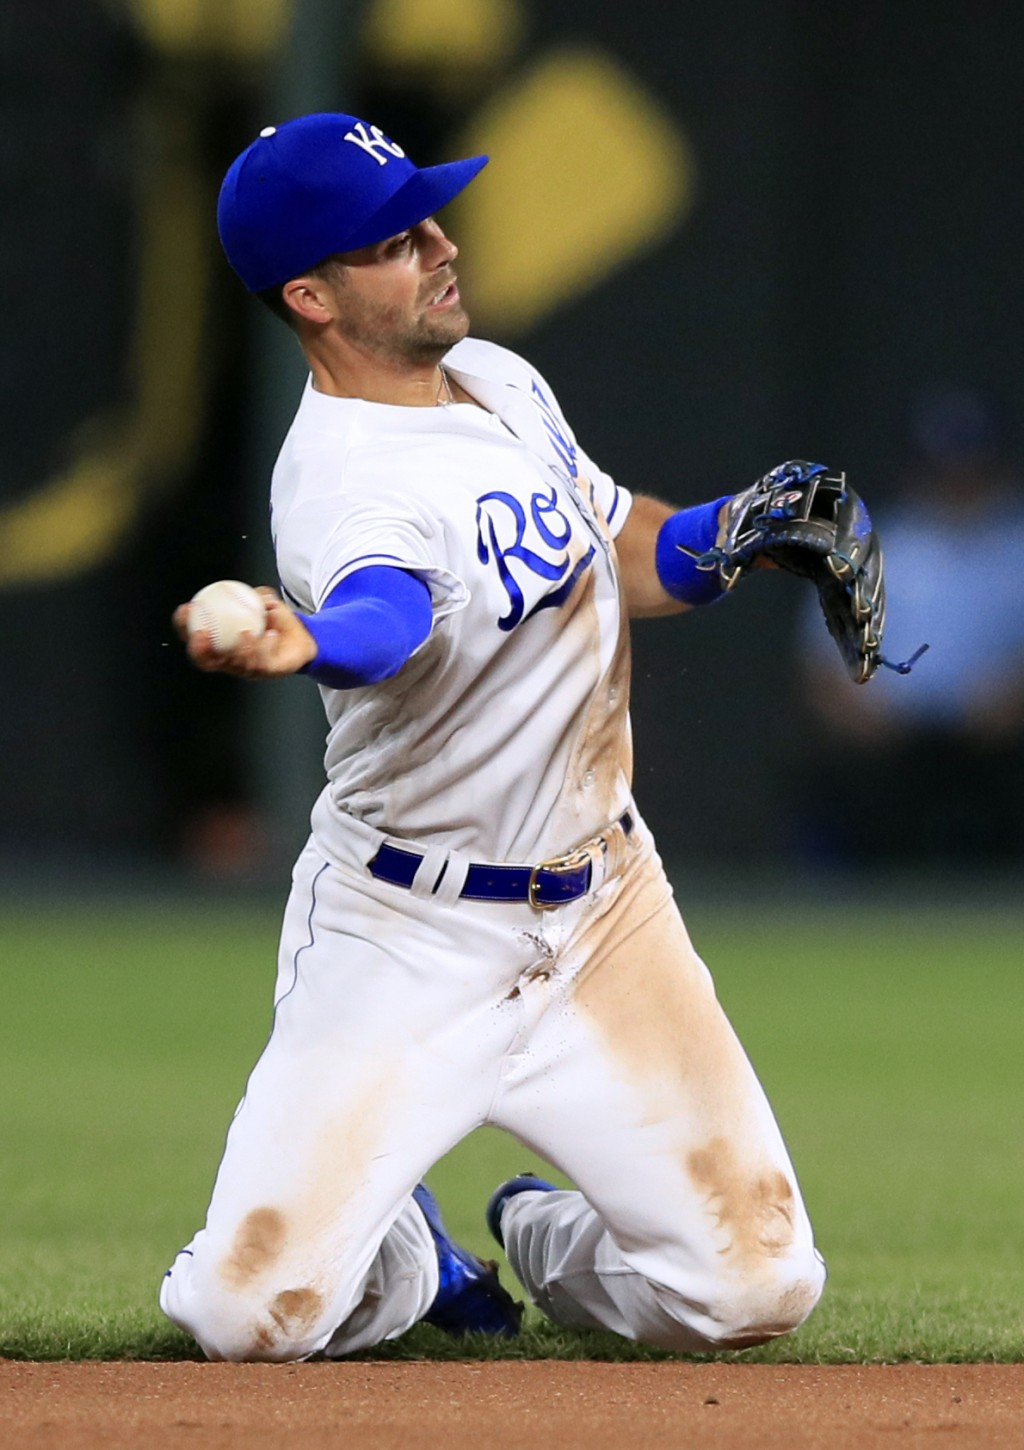 Kansas City Royals second baseman Whit Merrifield throws out Detroit Tigers' Ronny Rodriguez during the seventh inning of a baseball game at Kauffman ...